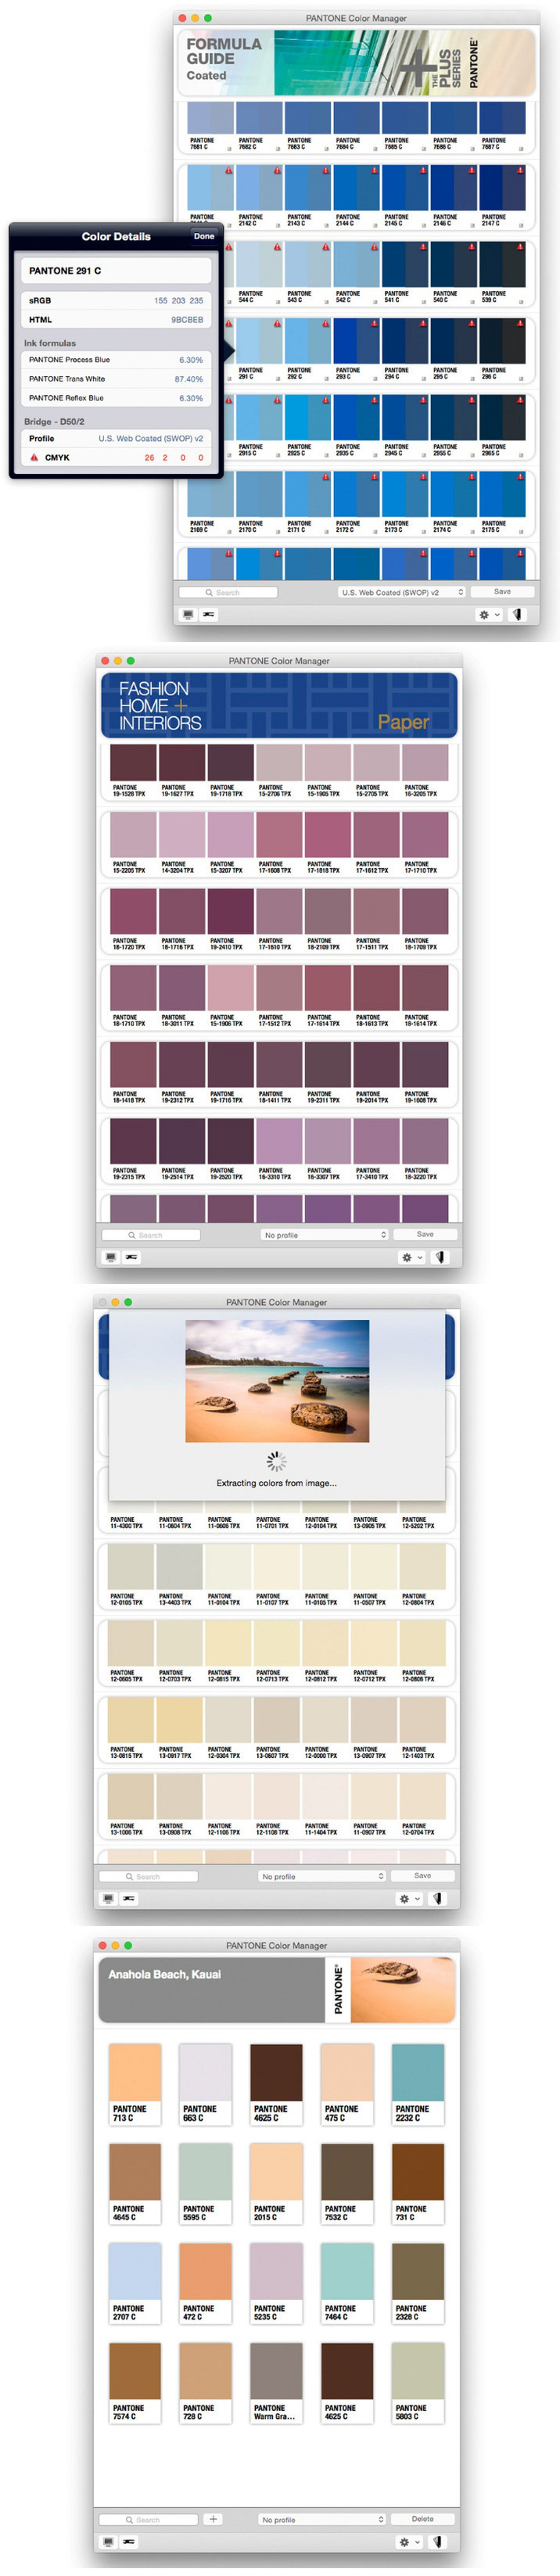 pantone_color_manager_210 - Pantone Color Manager